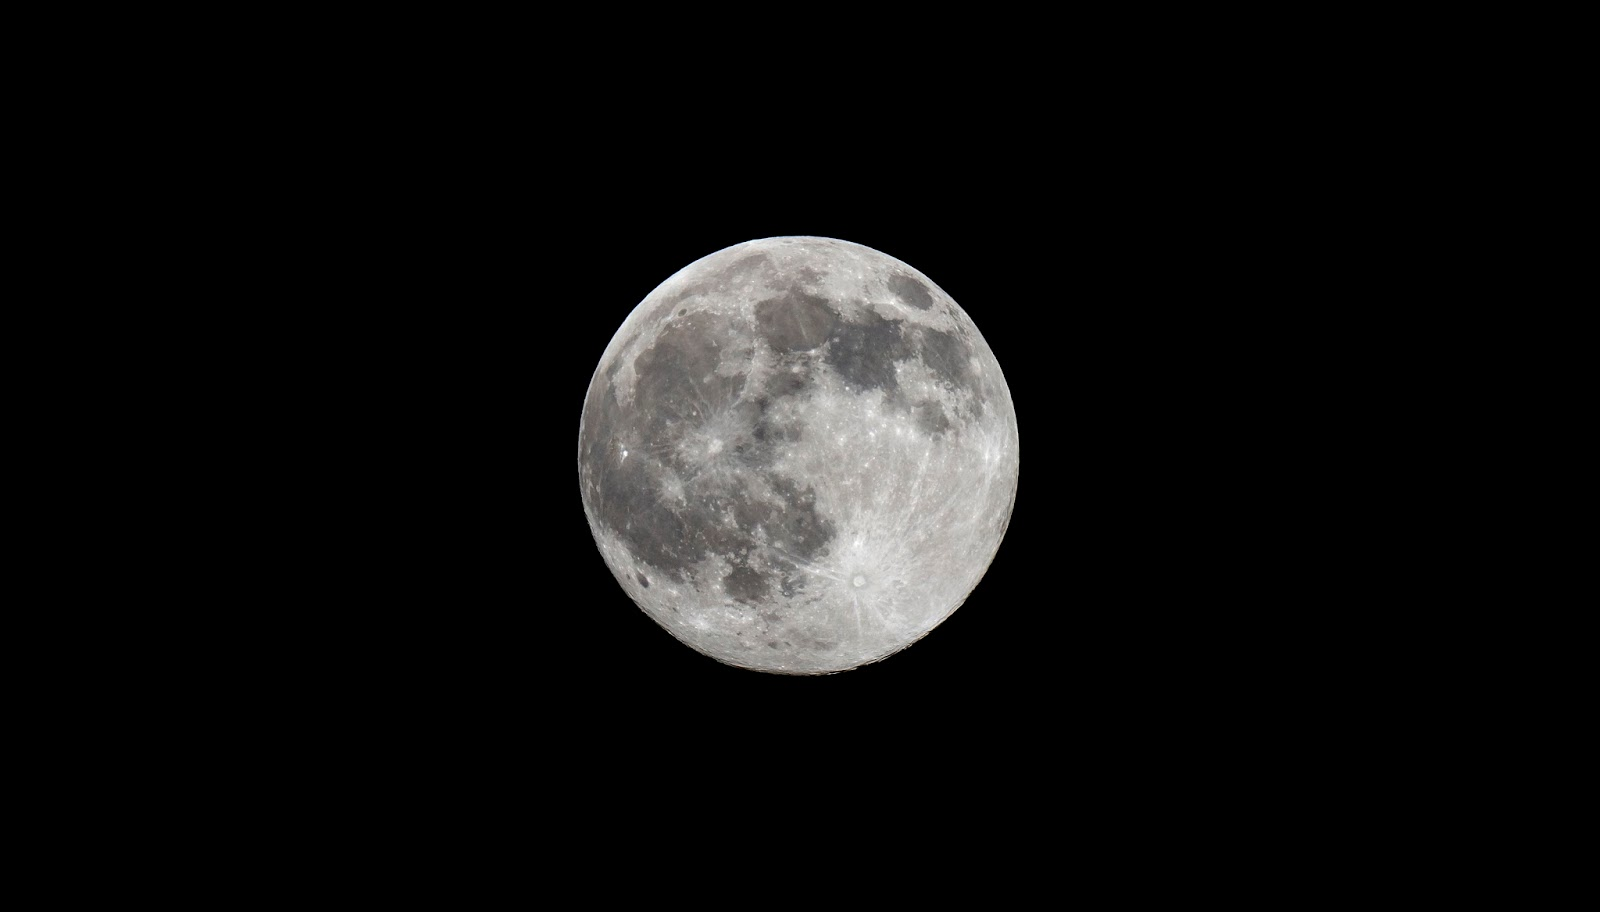 Picture of the moon taken with a DSLR Camera